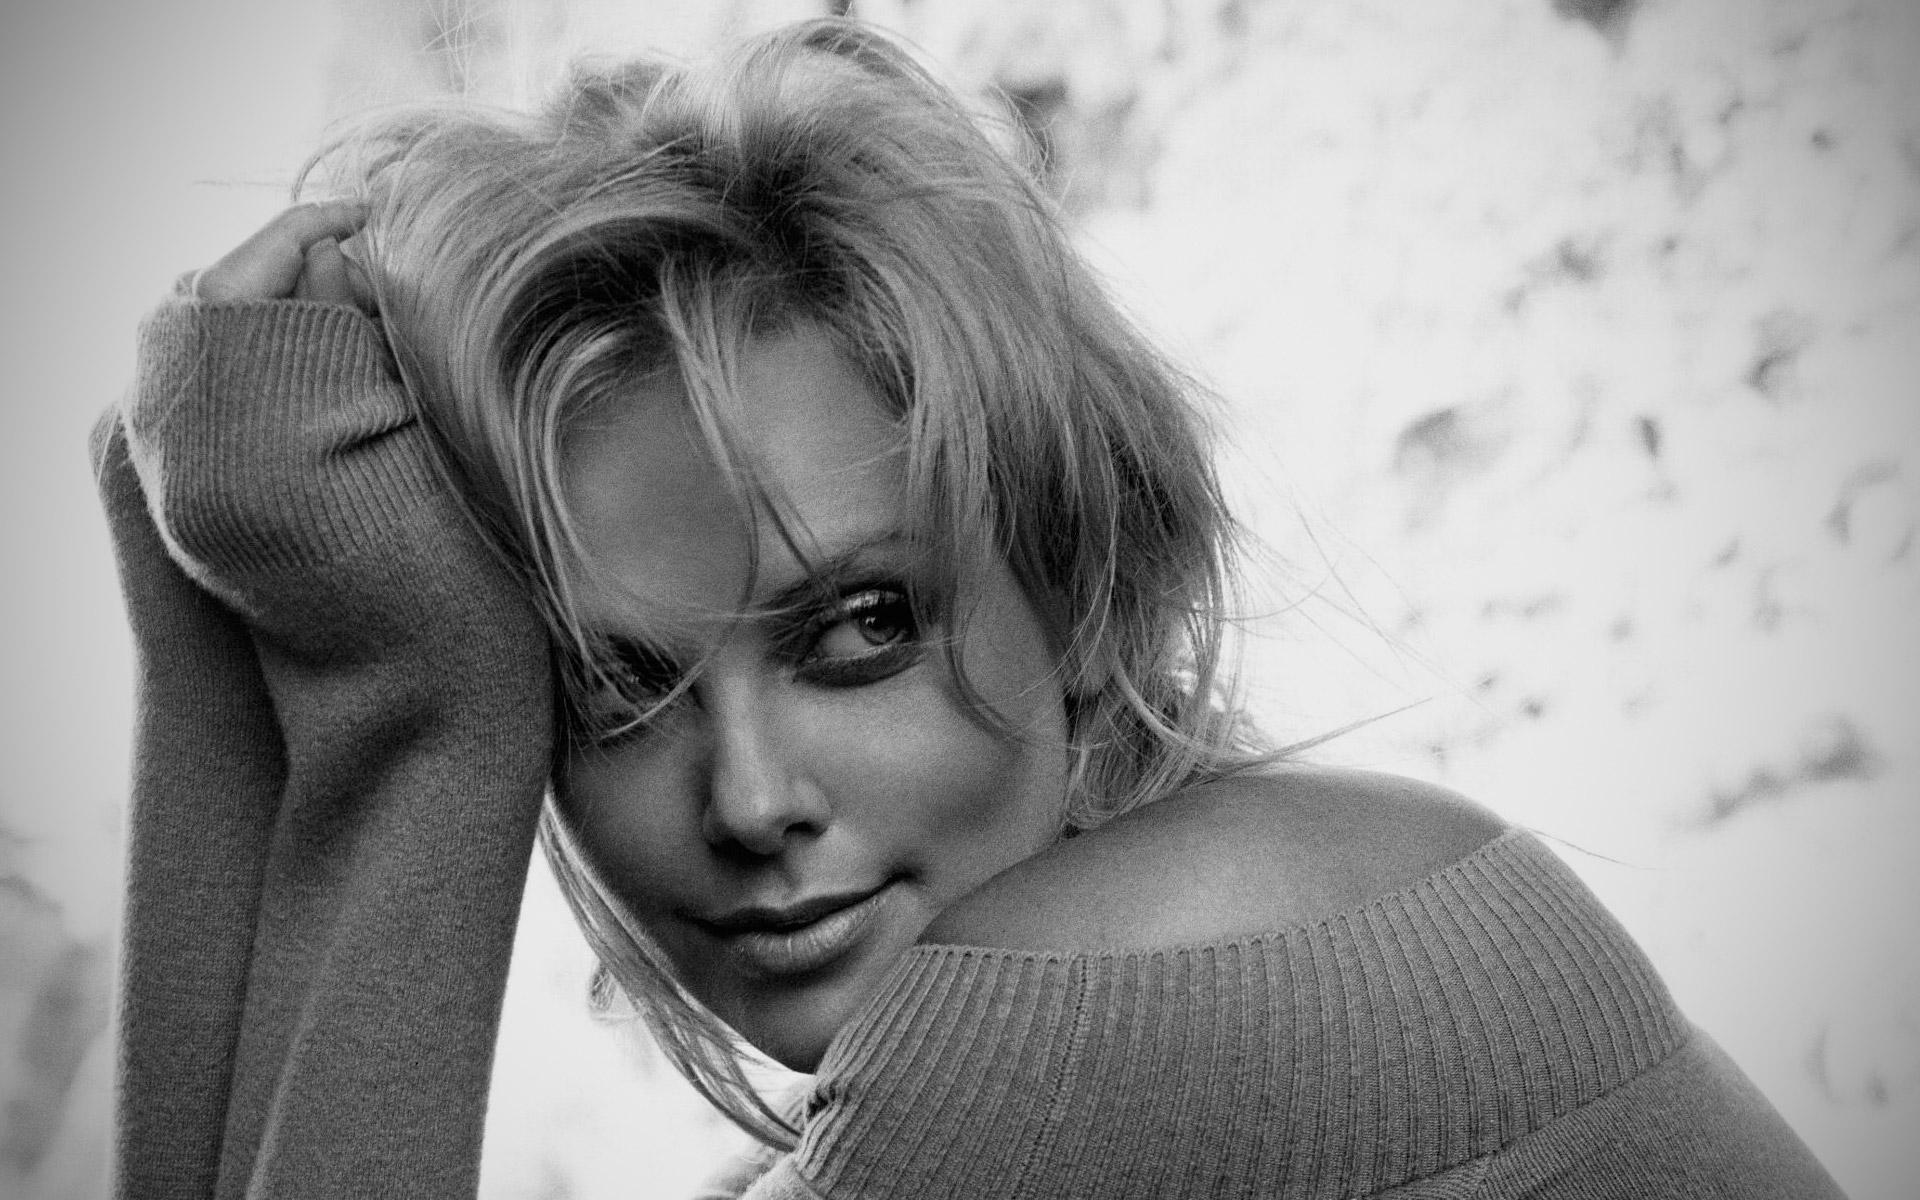 Charlize Theron Wallpapers CelebrityWallpapersHQ IPhone Wallpaper IPod HD Free Download 1920x1200